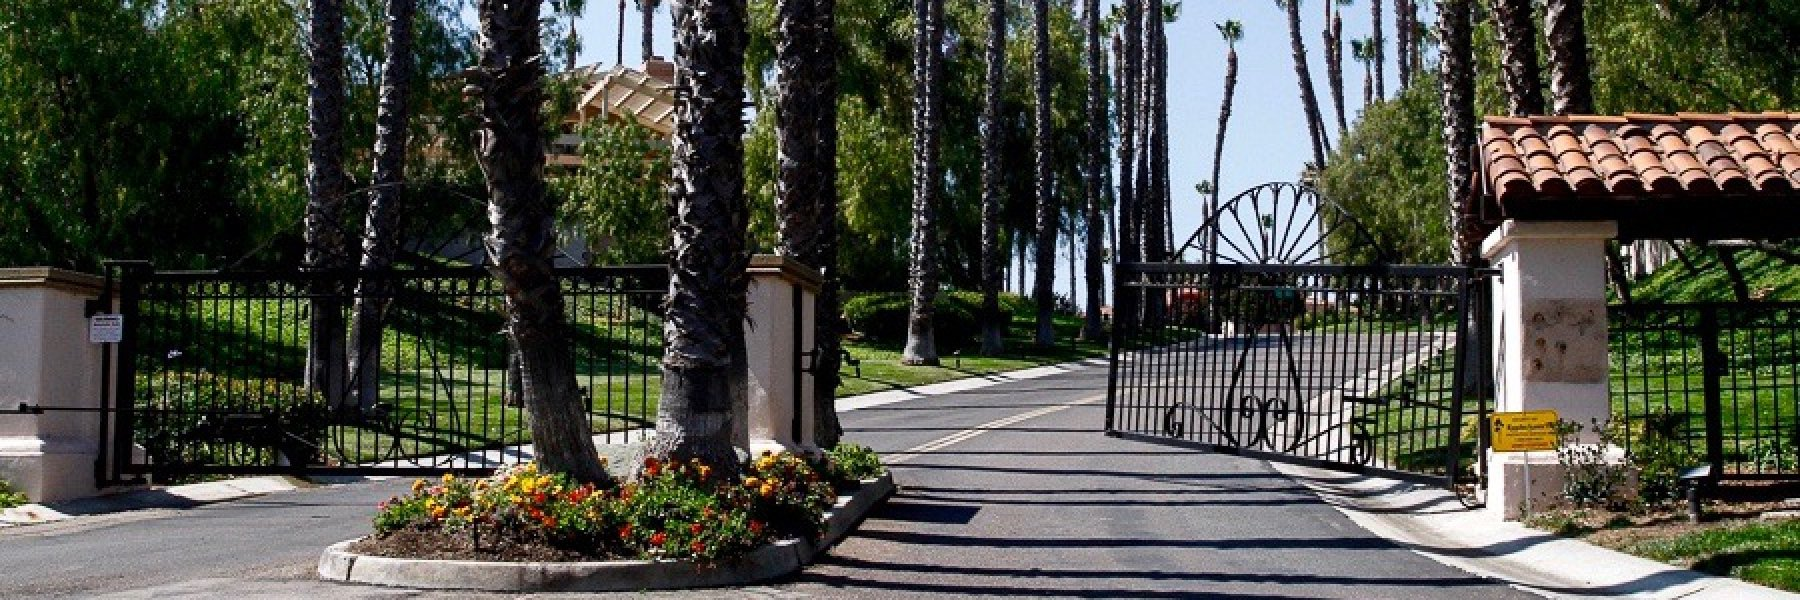 Del Rayo Downs is a community of homes in San Diego California